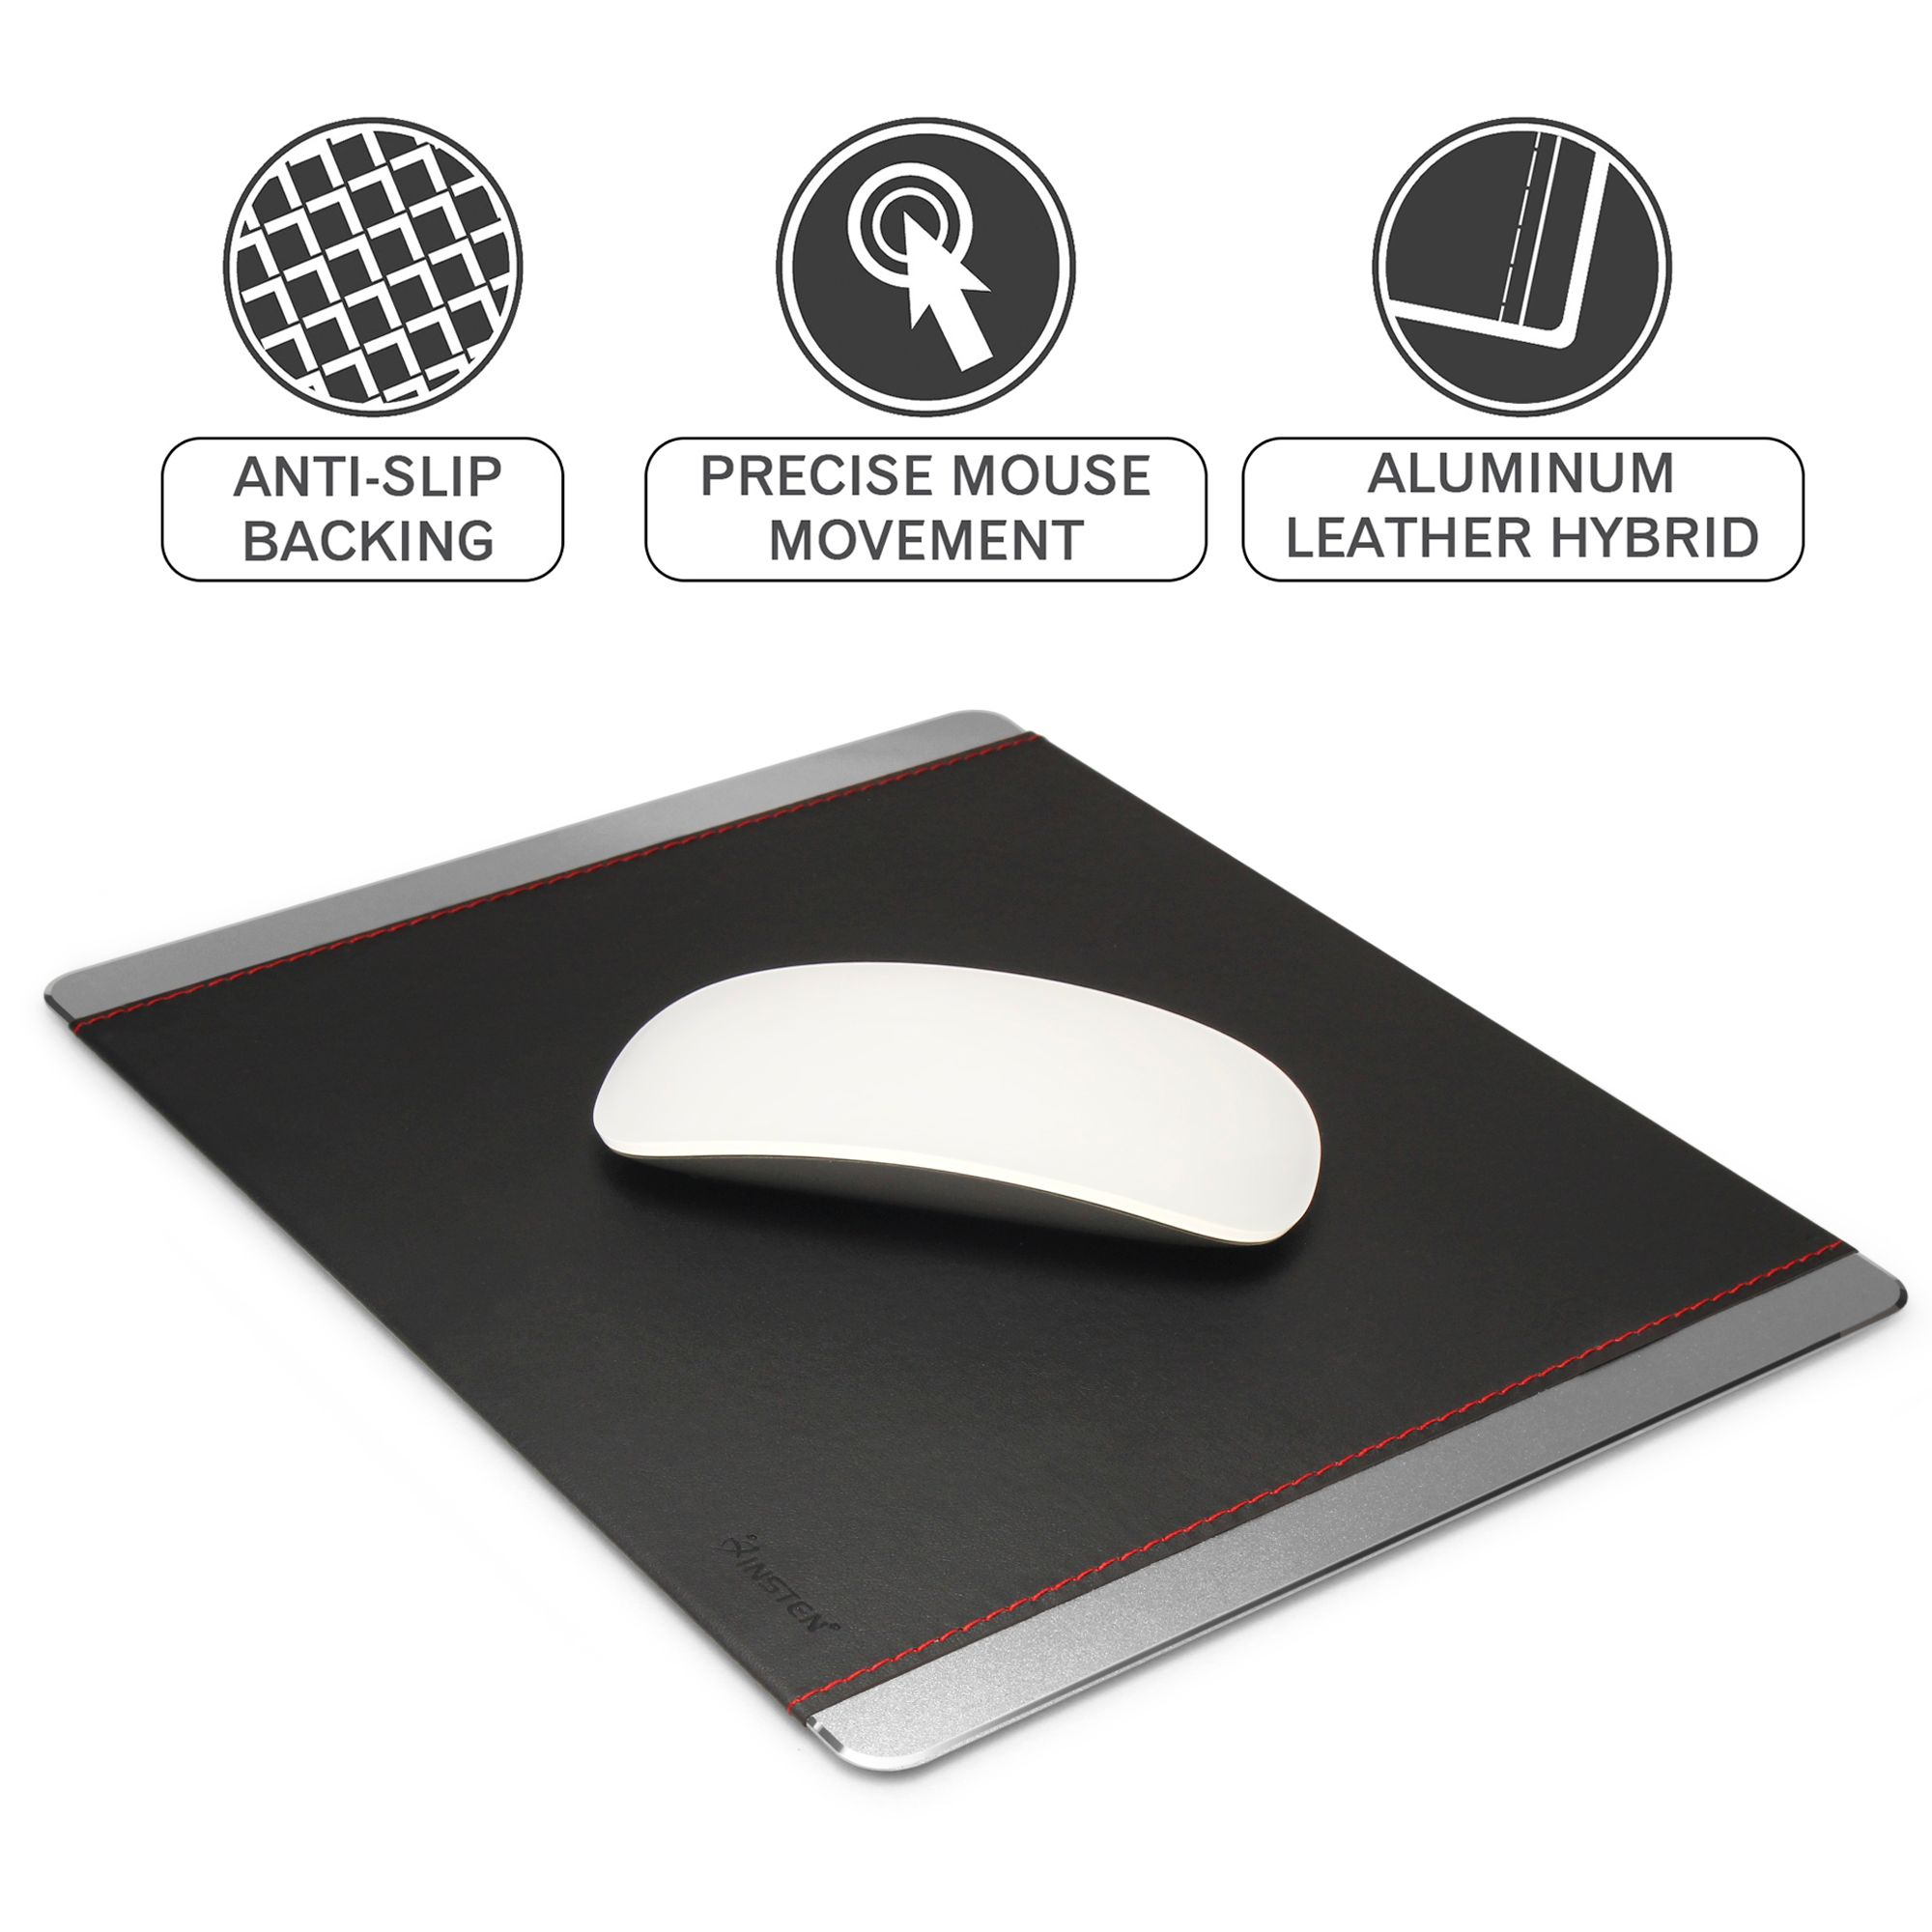 Insten Aluminum w/Leather Strong Durable Mouse Pad 3mm Thick Non-Slip Mice Mat (Size: 24 cm x 20cm) For Laptop PC Gaming - Silver/Black